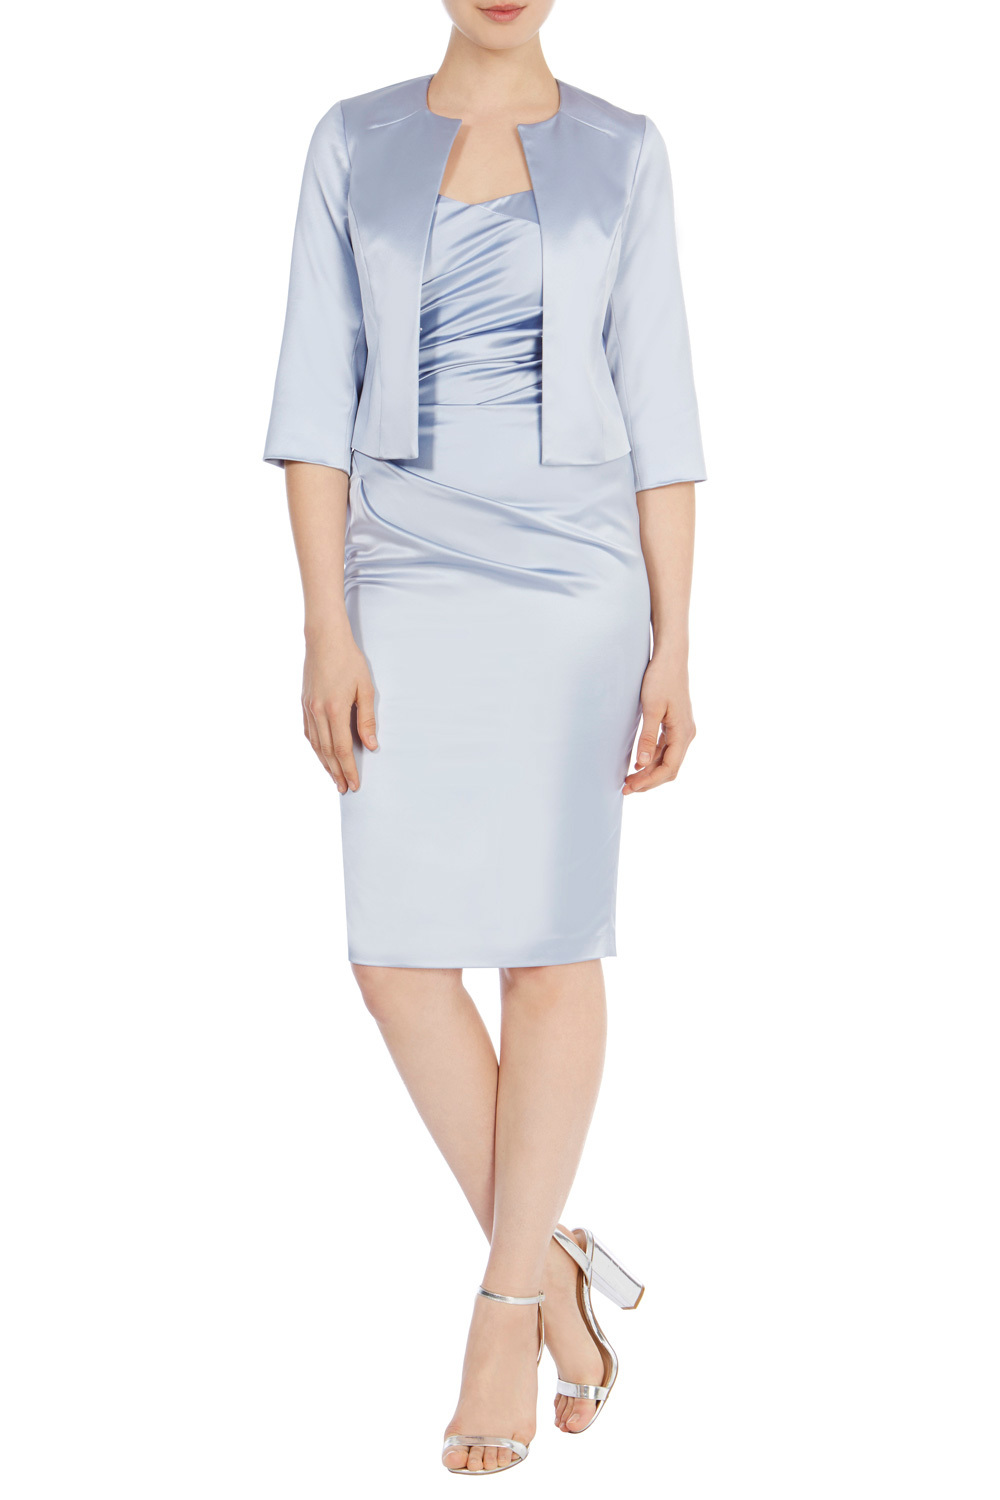 Zariya Duchess Satin Jacket - pattern: plain; collar: round collar/collarless; style: boxy; predominant colour: pale blue; fit: straight cut (boxy); fibres: polyester/polyamide - 100%; occasions: occasion; sleeve length: 3/4 length; sleeve style: standard; texture group: structured shiny - satin/tafetta/silk etc.; collar break: low/open; pattern type: fabric; length: cropped; season: s/s 2016; wardrobe: event